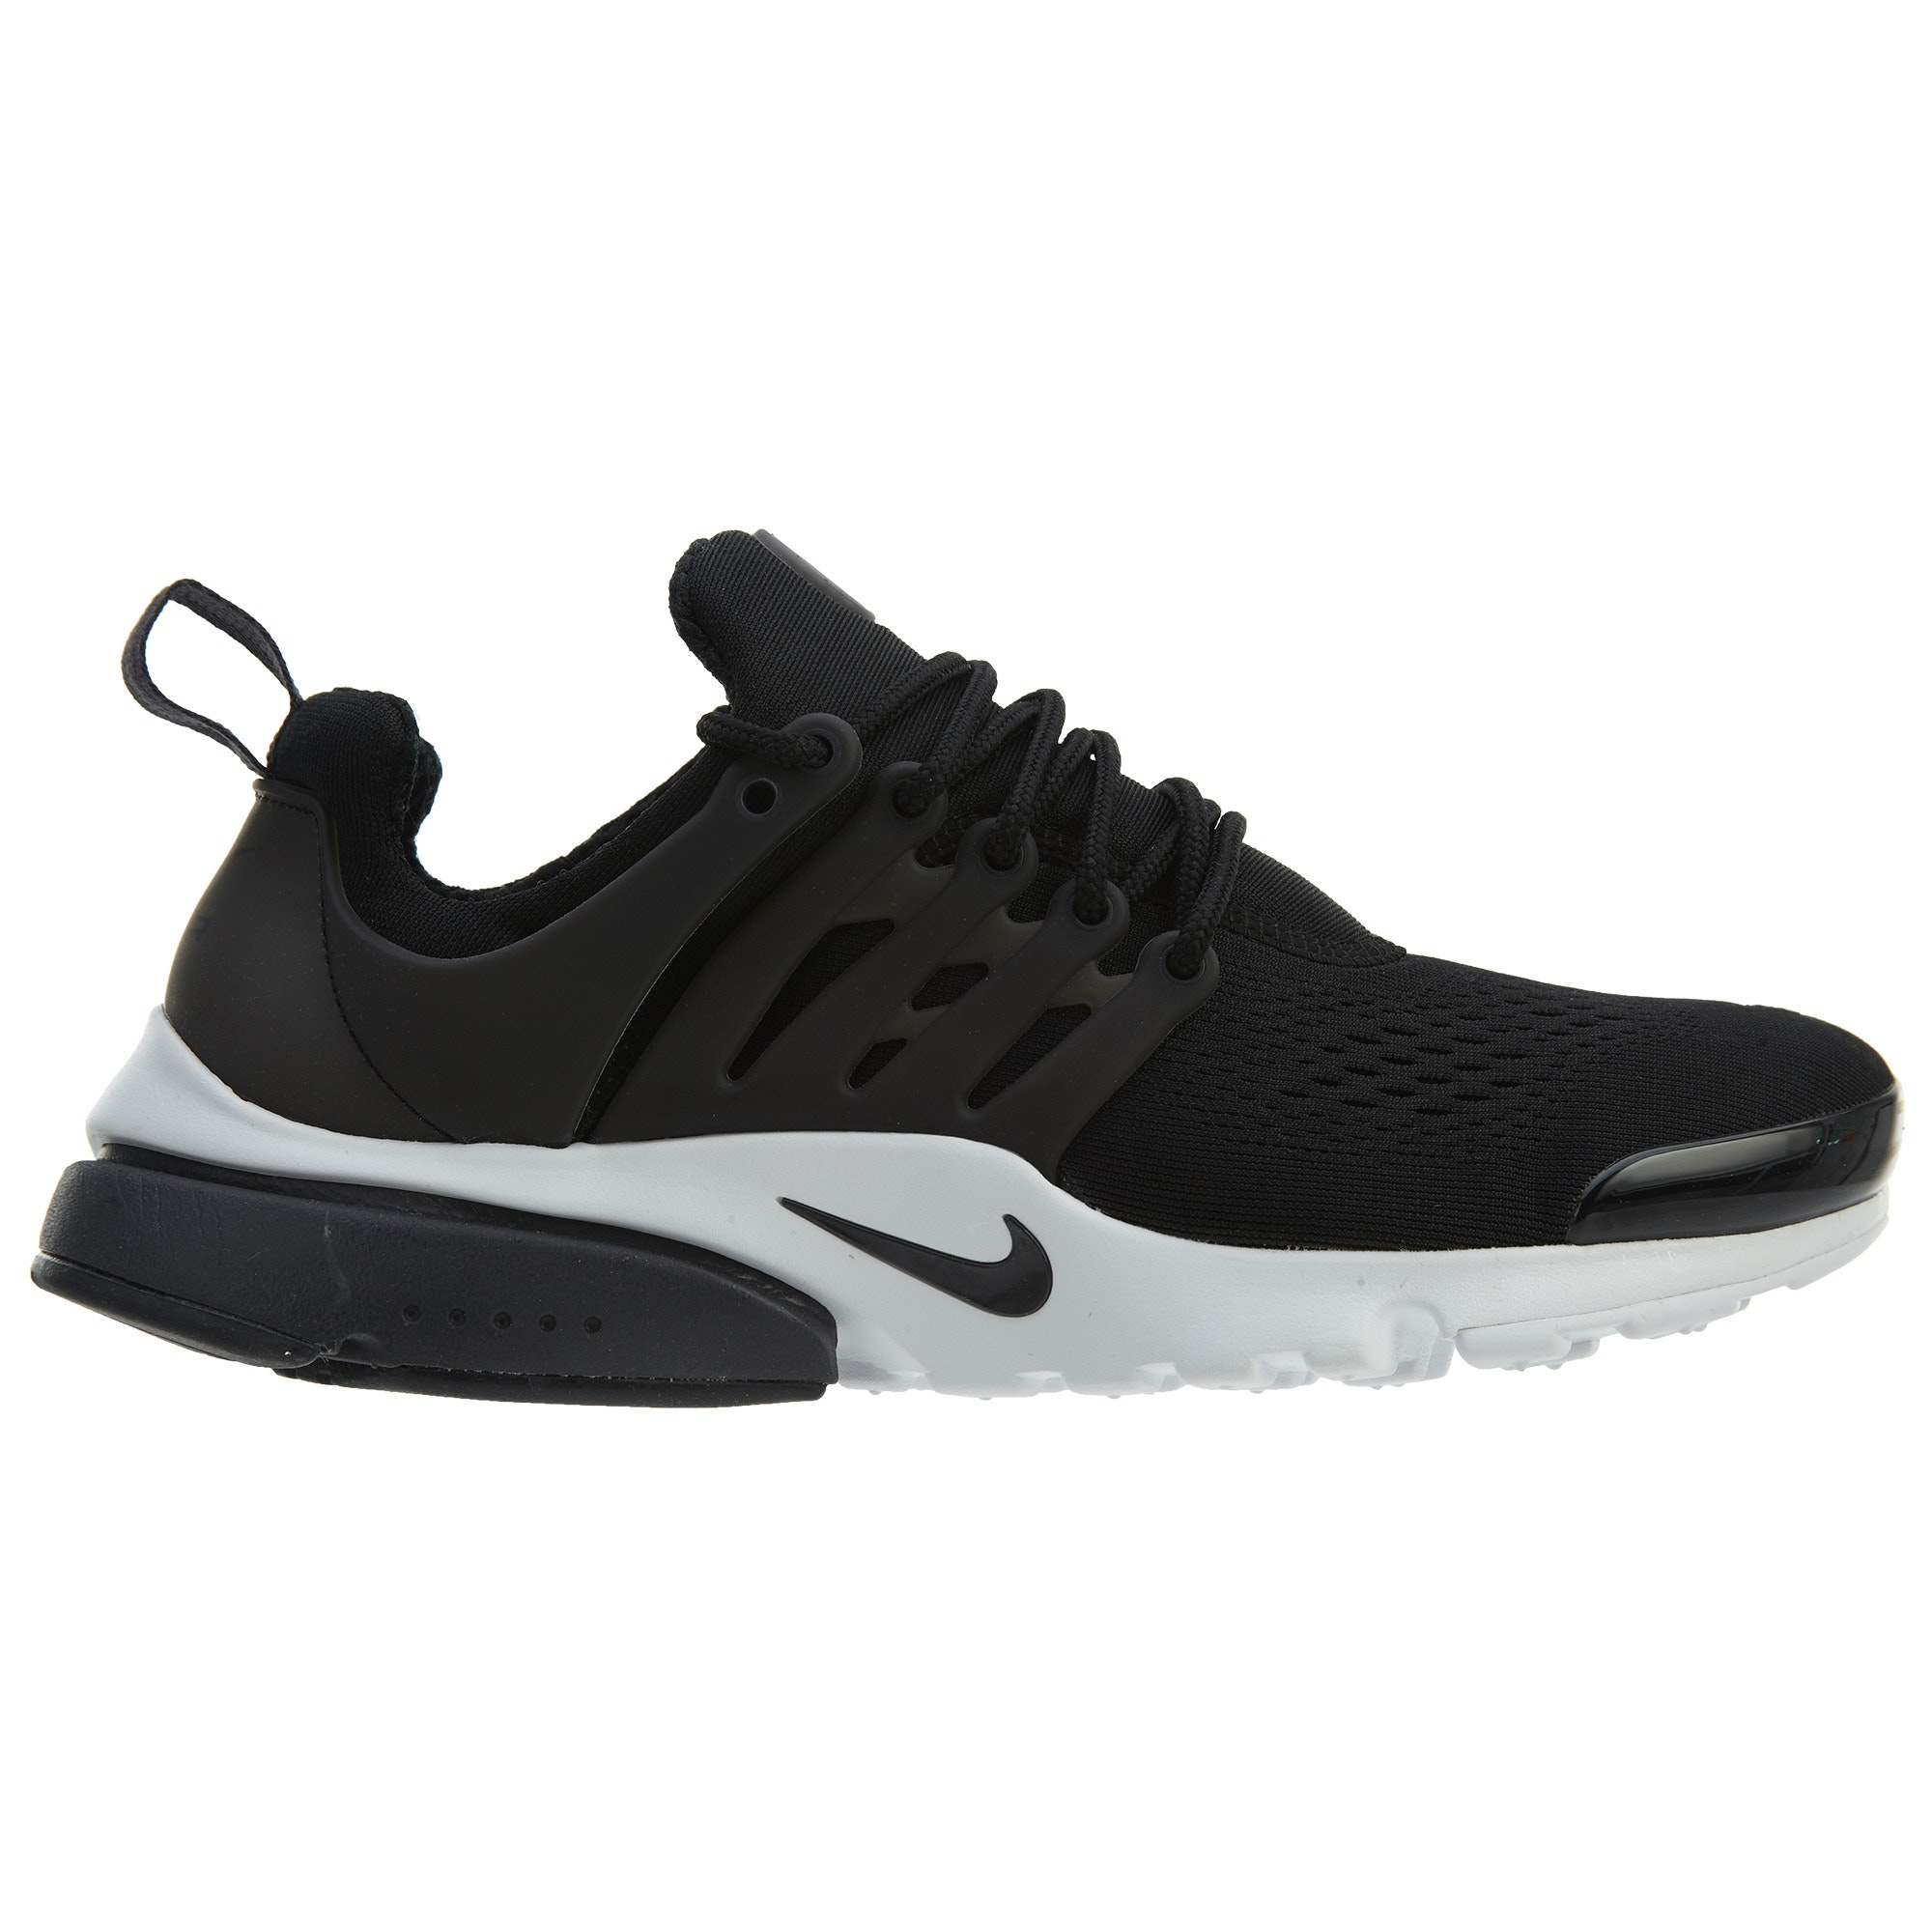 Air Presto Ultra Br Black Anthracite-Black-White